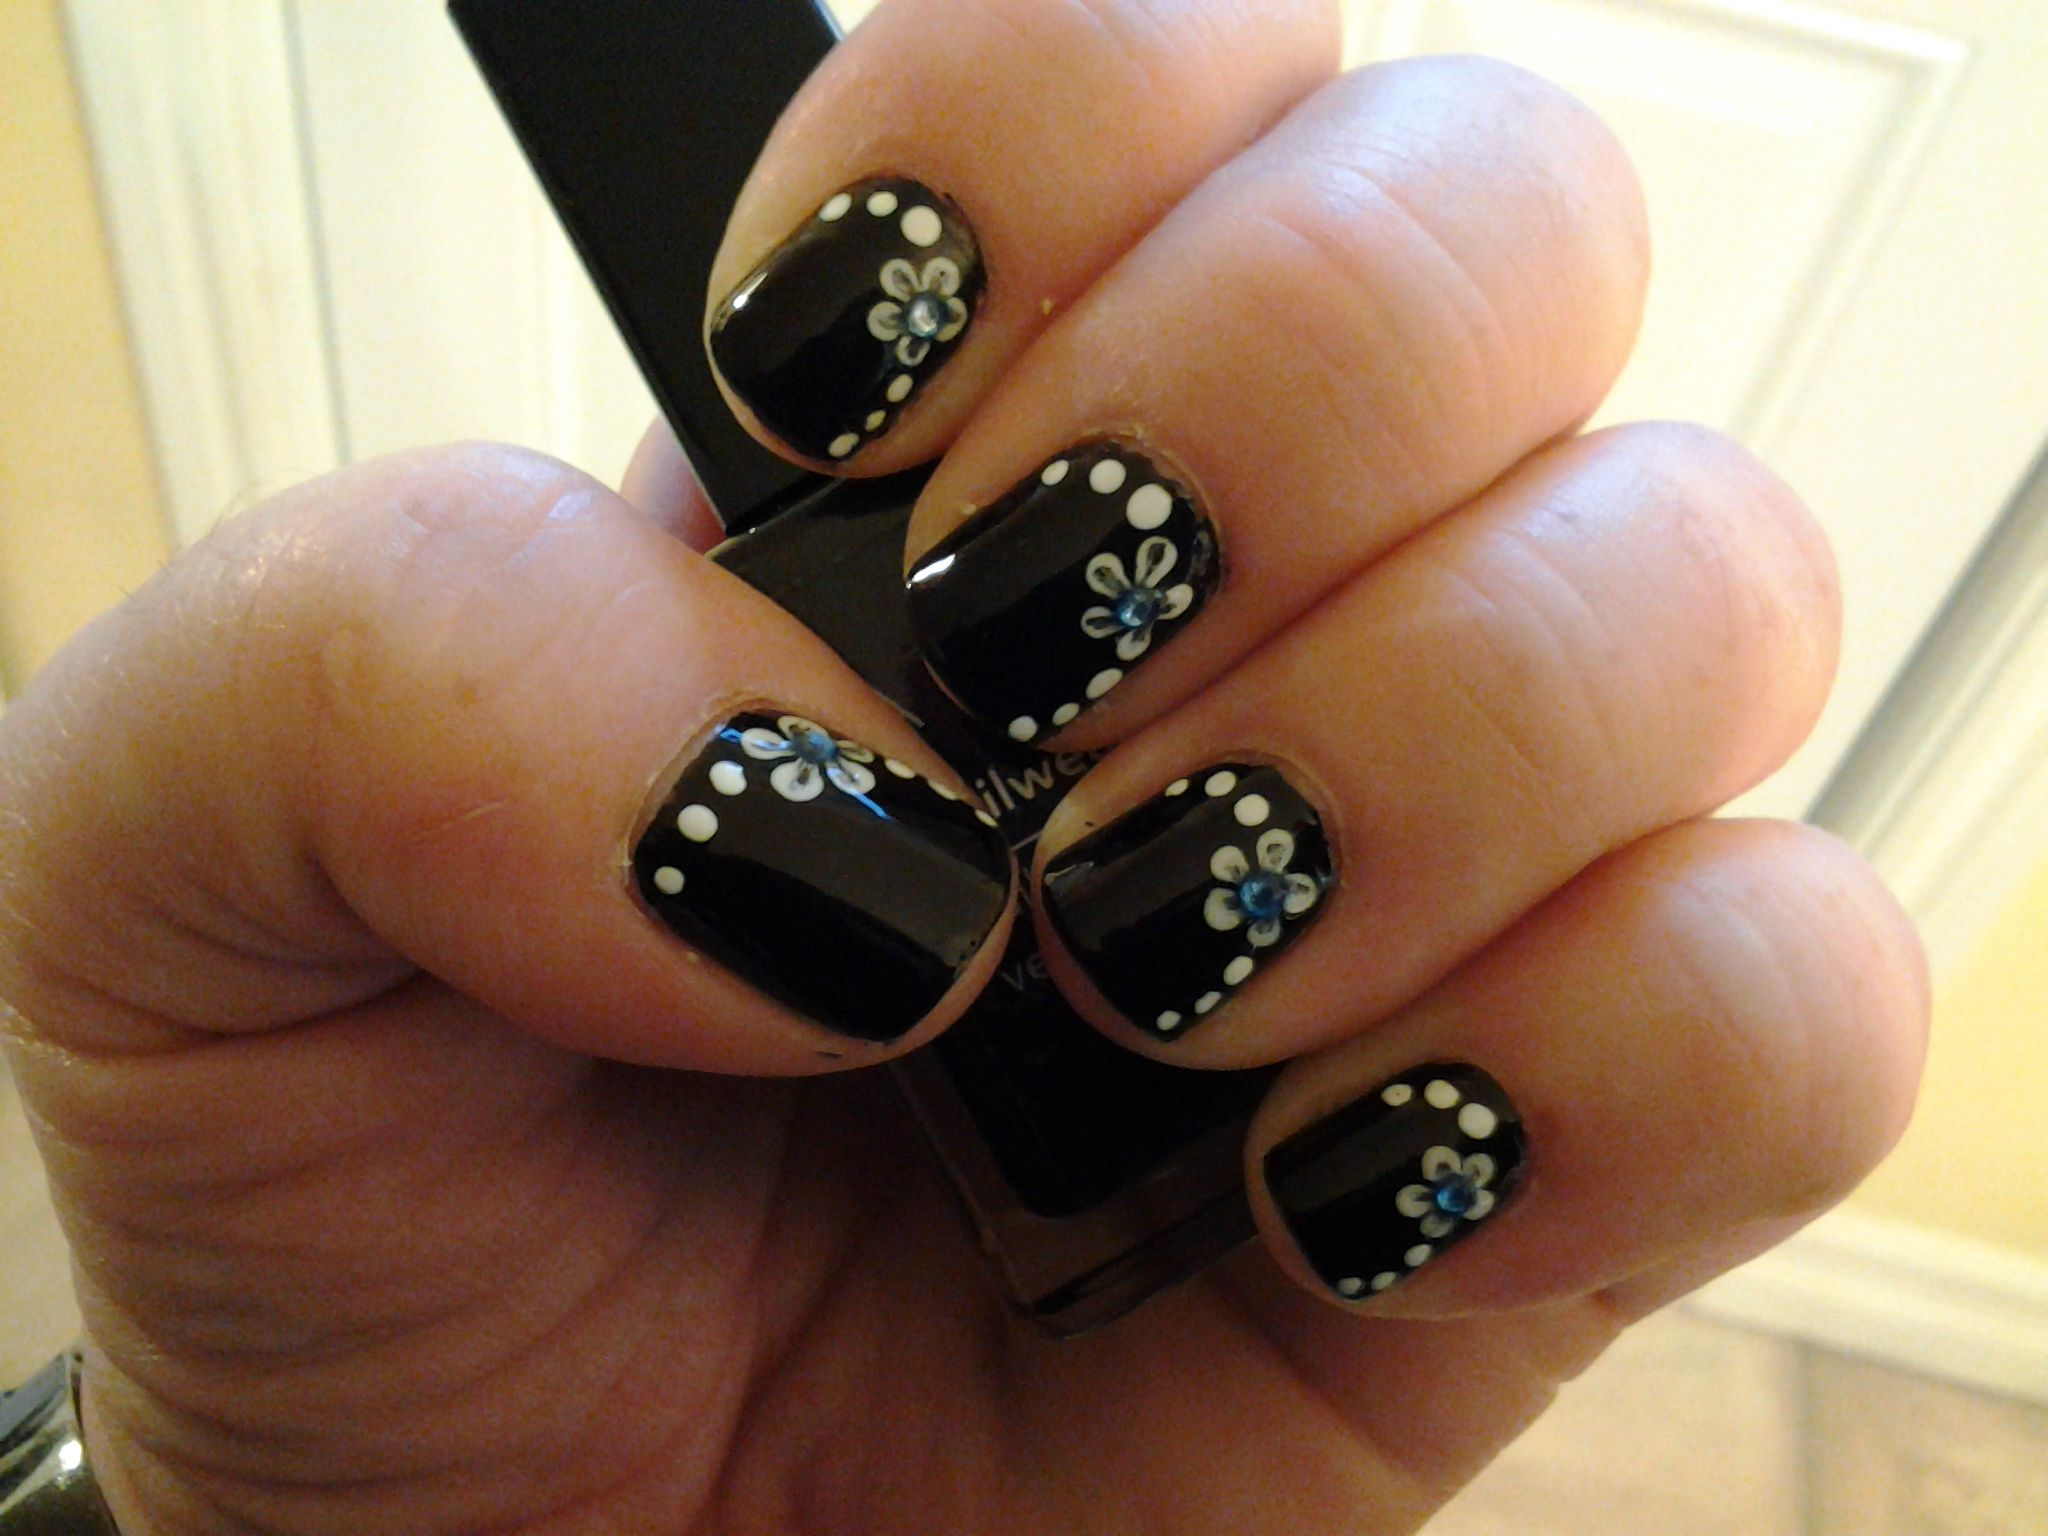 I really like flowers with gems on nail designs nails i really like flowers with gems on nail designs prinsesfo Gallery